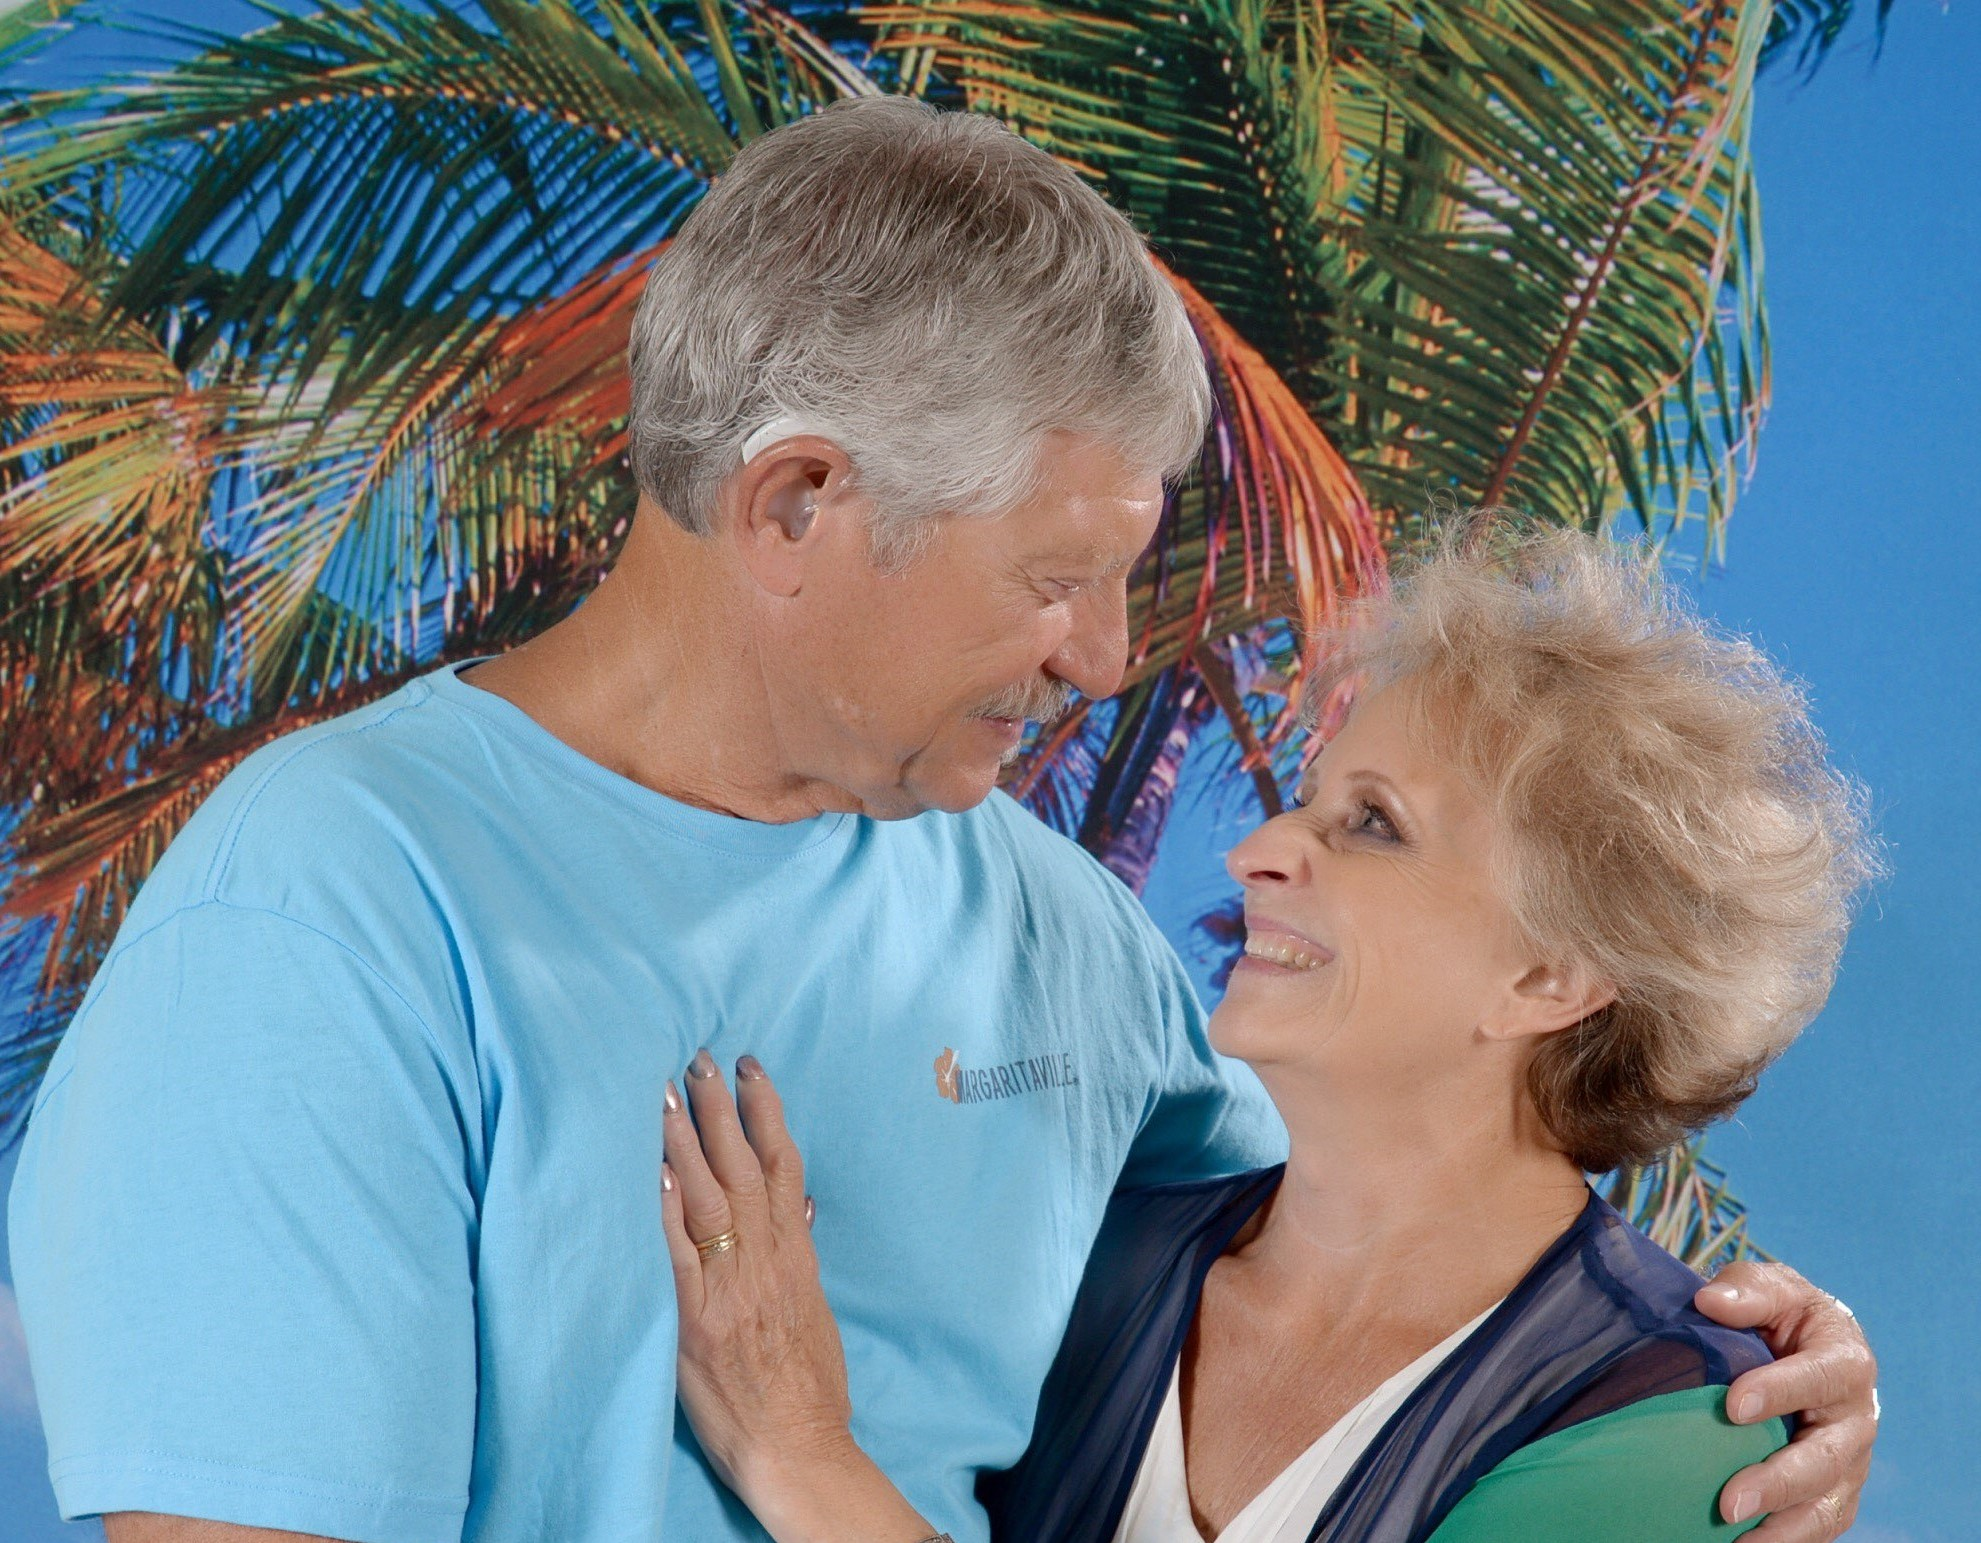 At 77 & 74 years of age our quality of life has greatly improved with the help of the Body N Balance & Bioidentical Hormone Replacement Therapy!